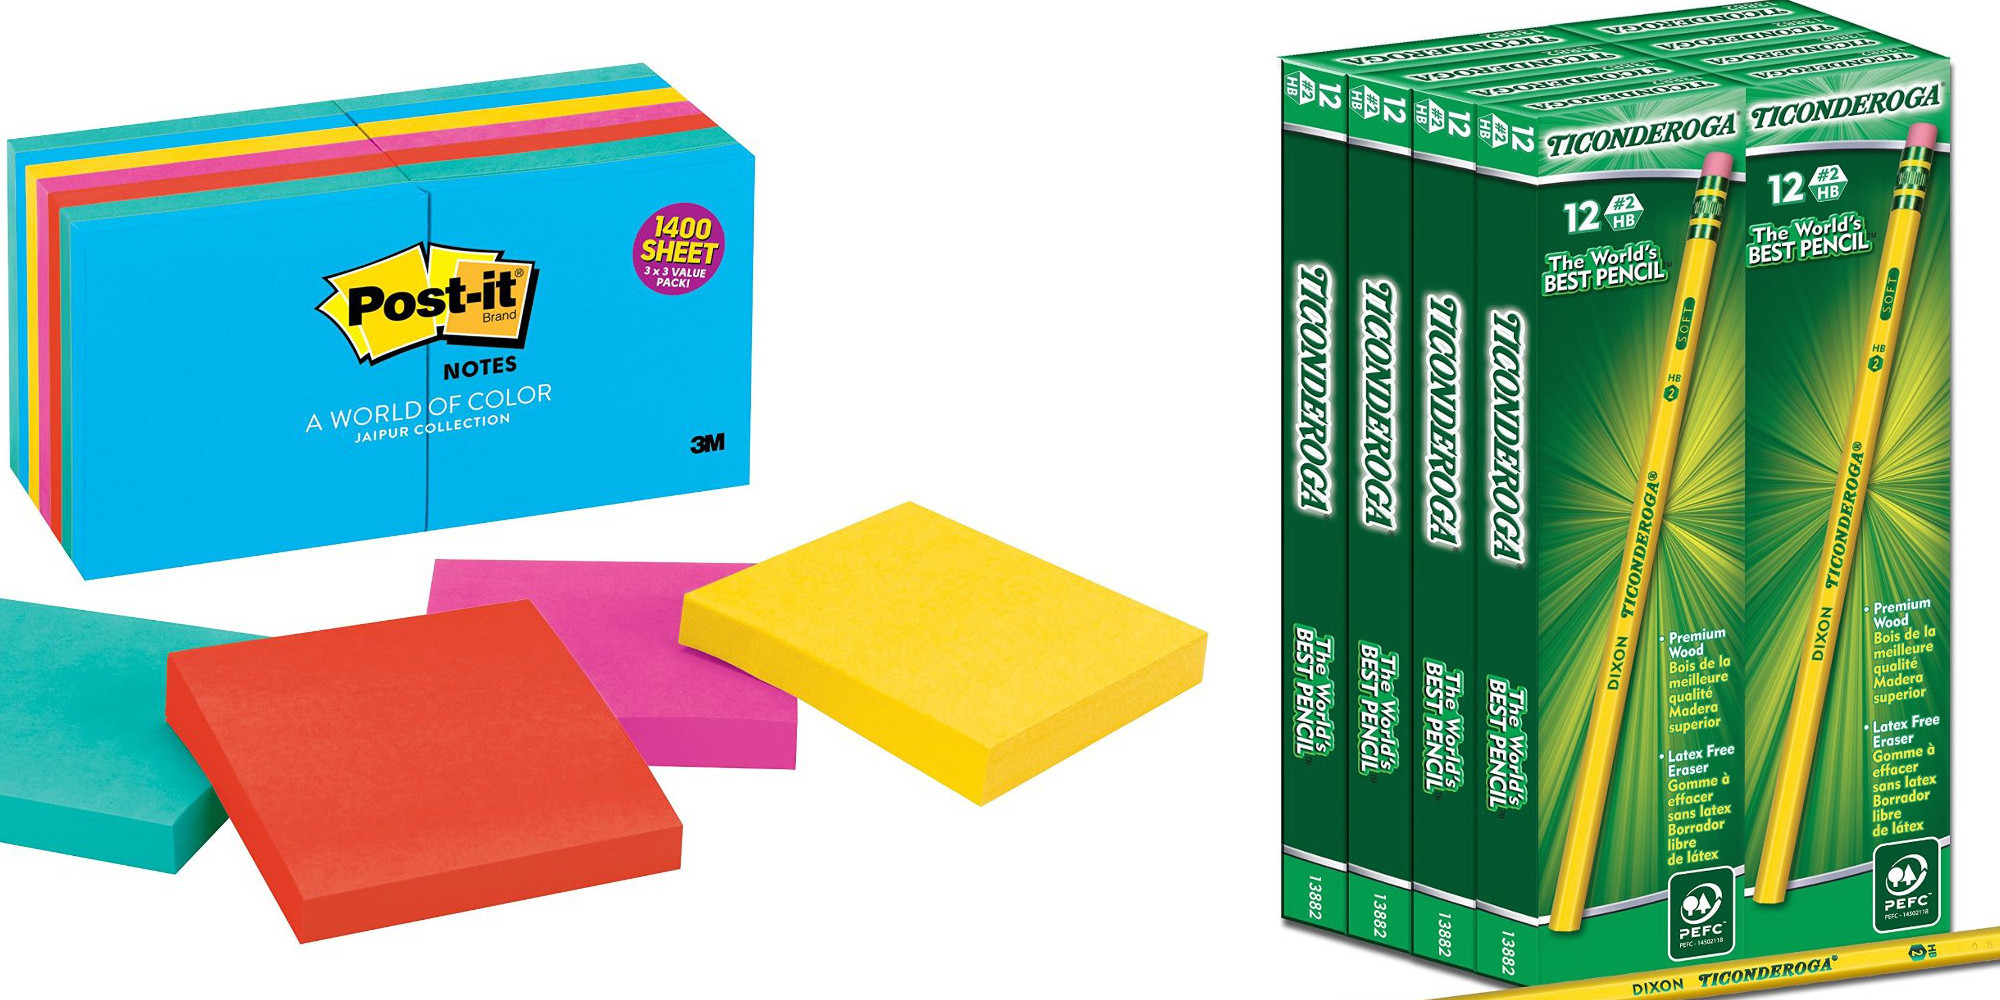 post-it-notes-pencils-office-supplies-sale-01